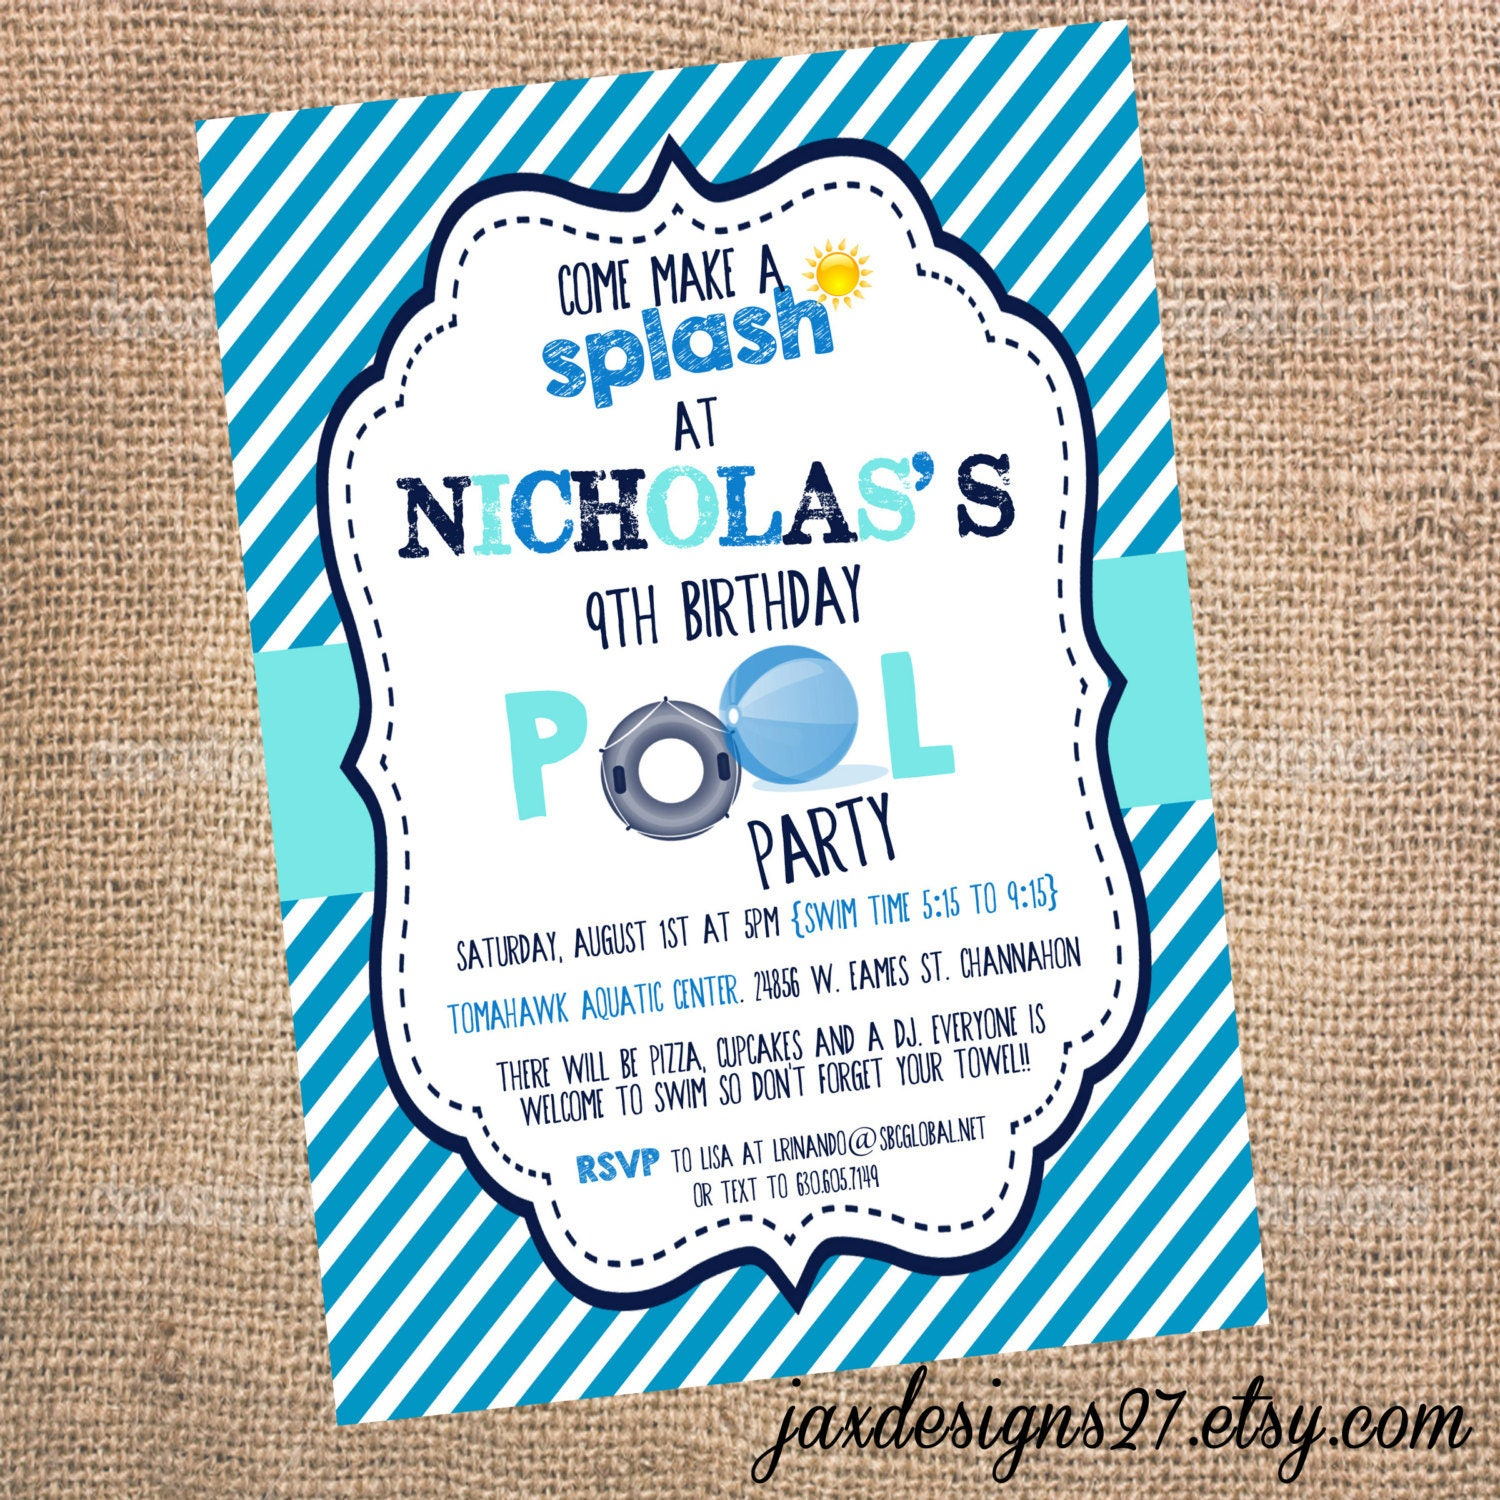 Digital kids birthday party invitations pool party zoom monicamarmolfo Image collections